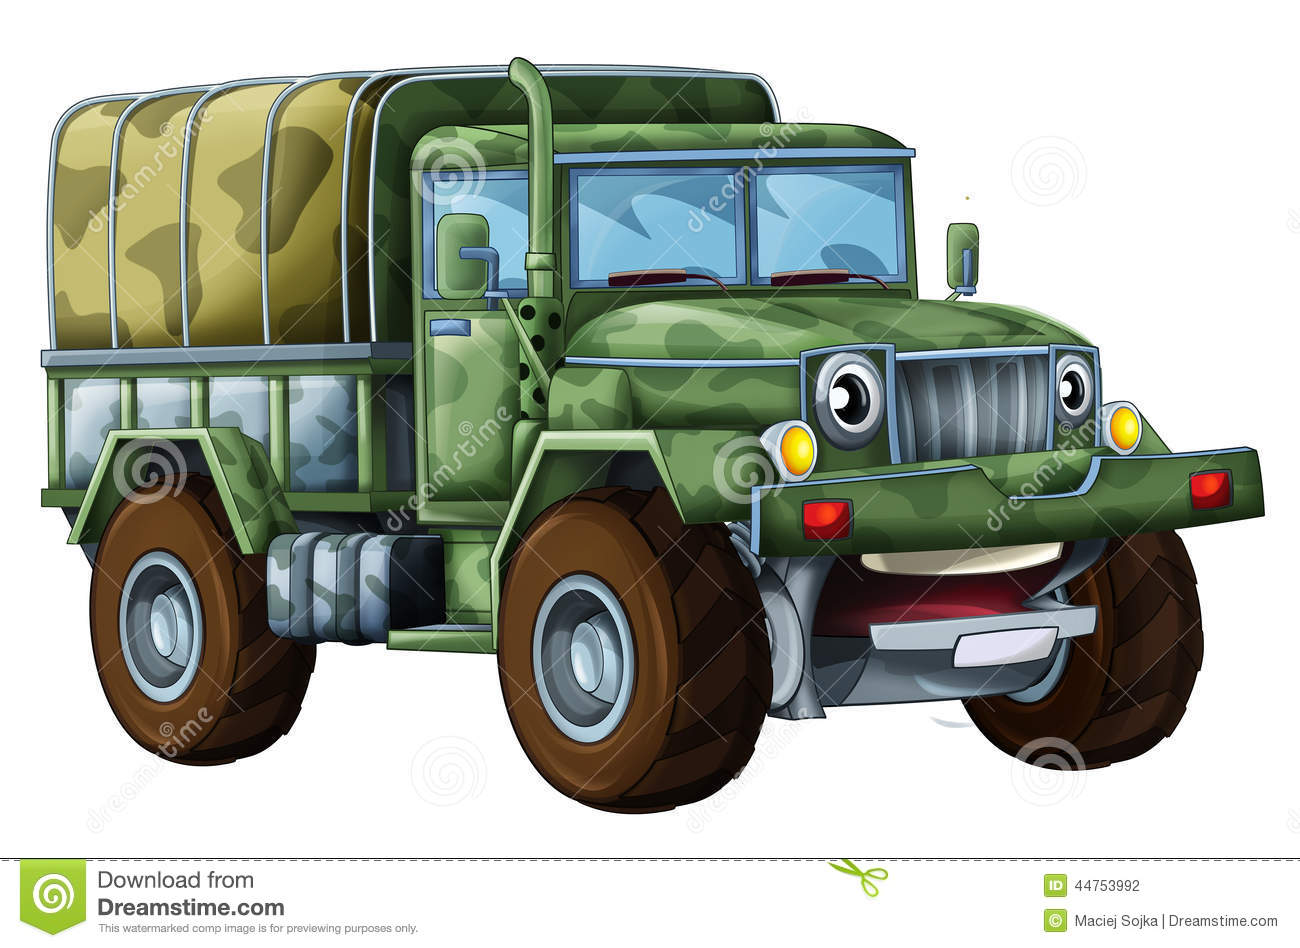 Truck clipart soldier. Pencil and in color